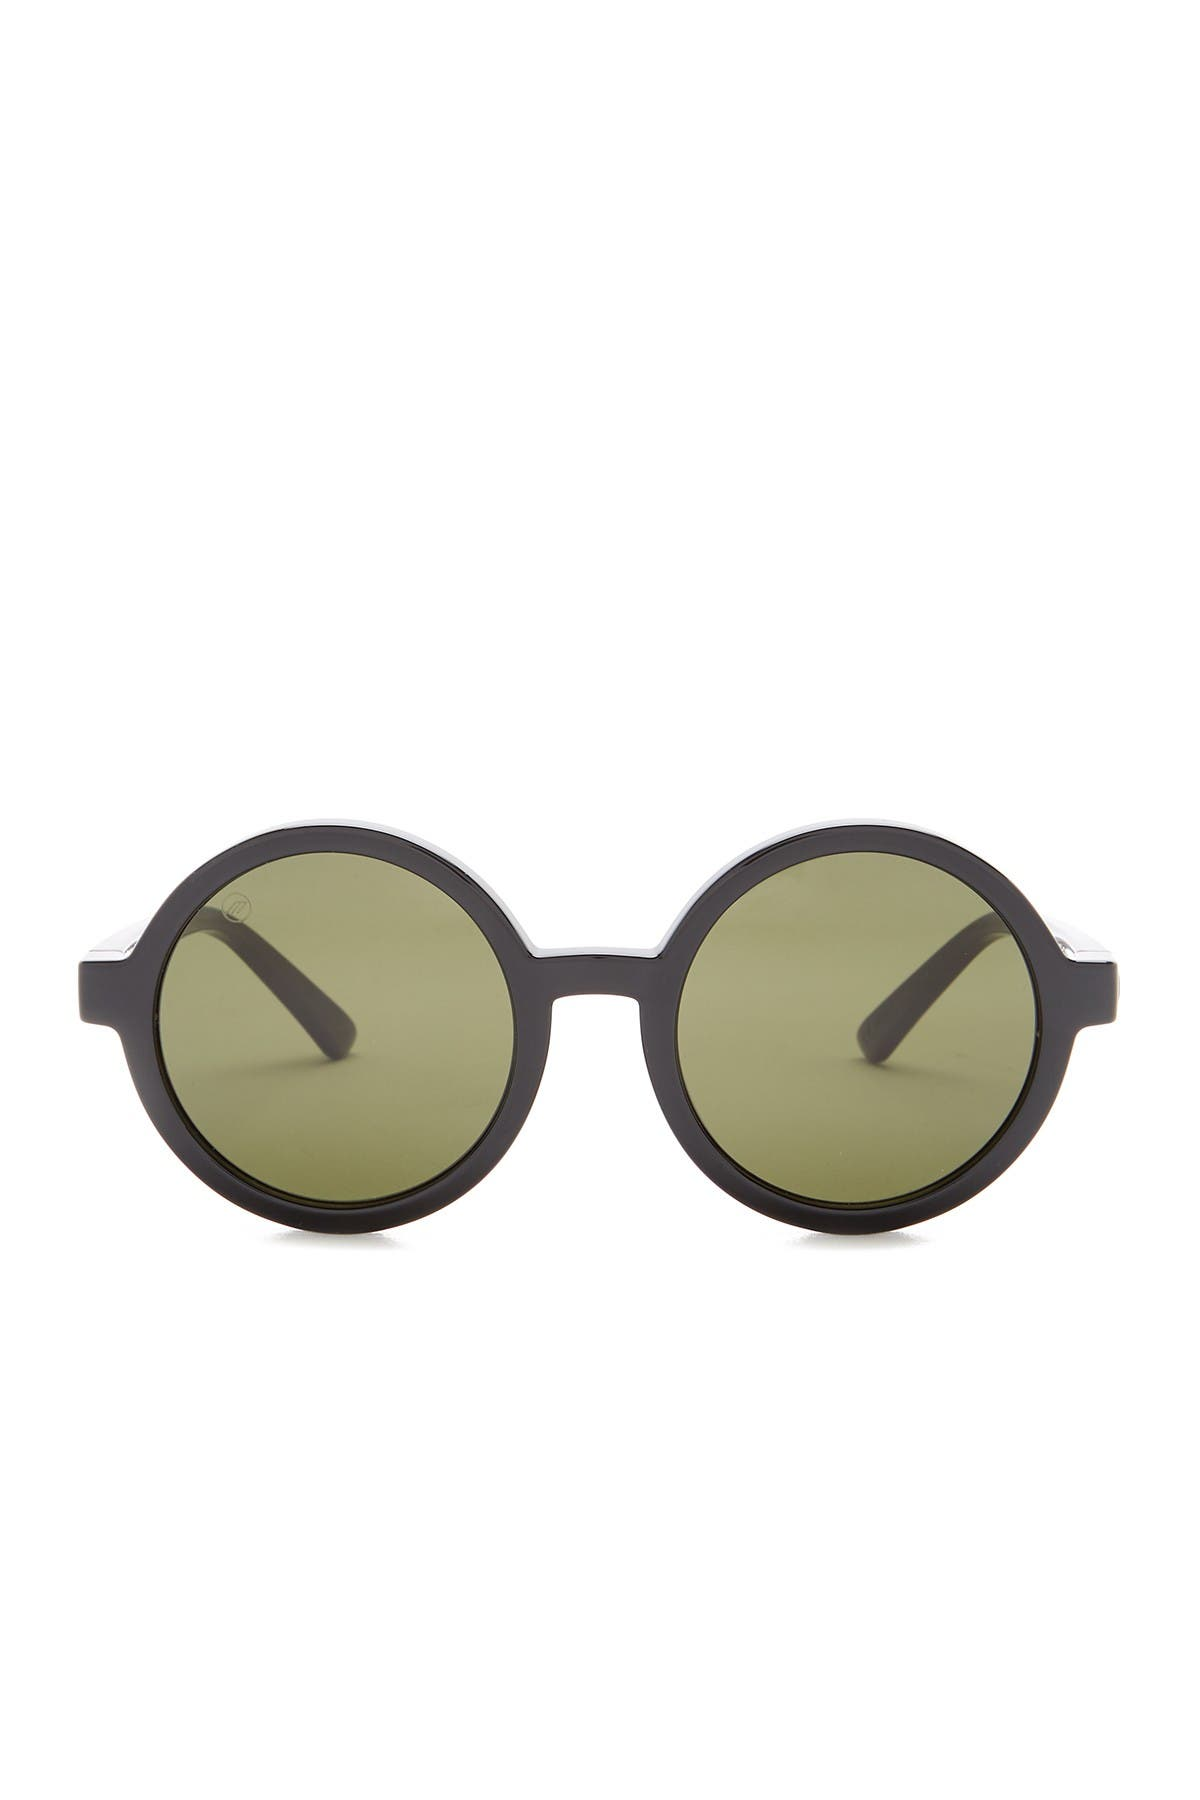 Image of ELECTRIC 51mm Lunar Round Sunglasses